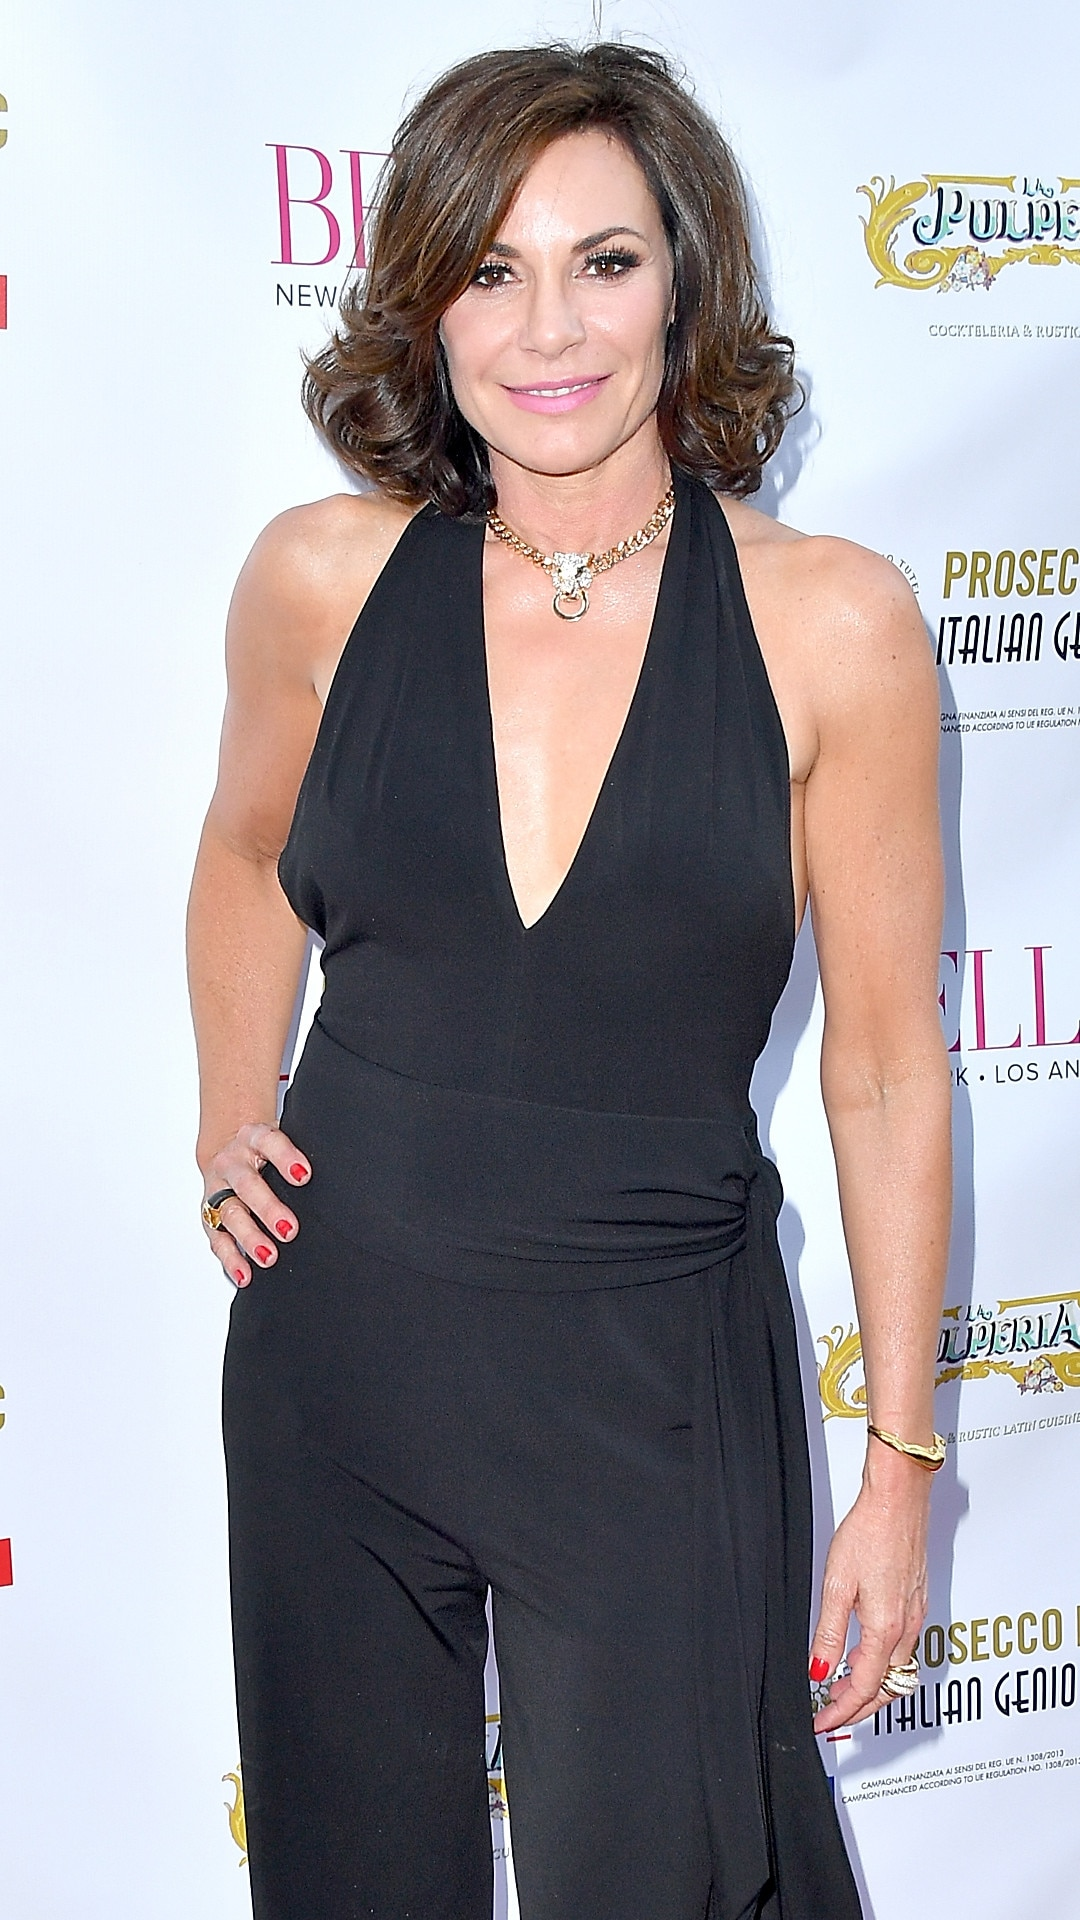 Luann de Lesseps Opens Up About Her Rough Year During Post Rehab     Luann De Lesseps